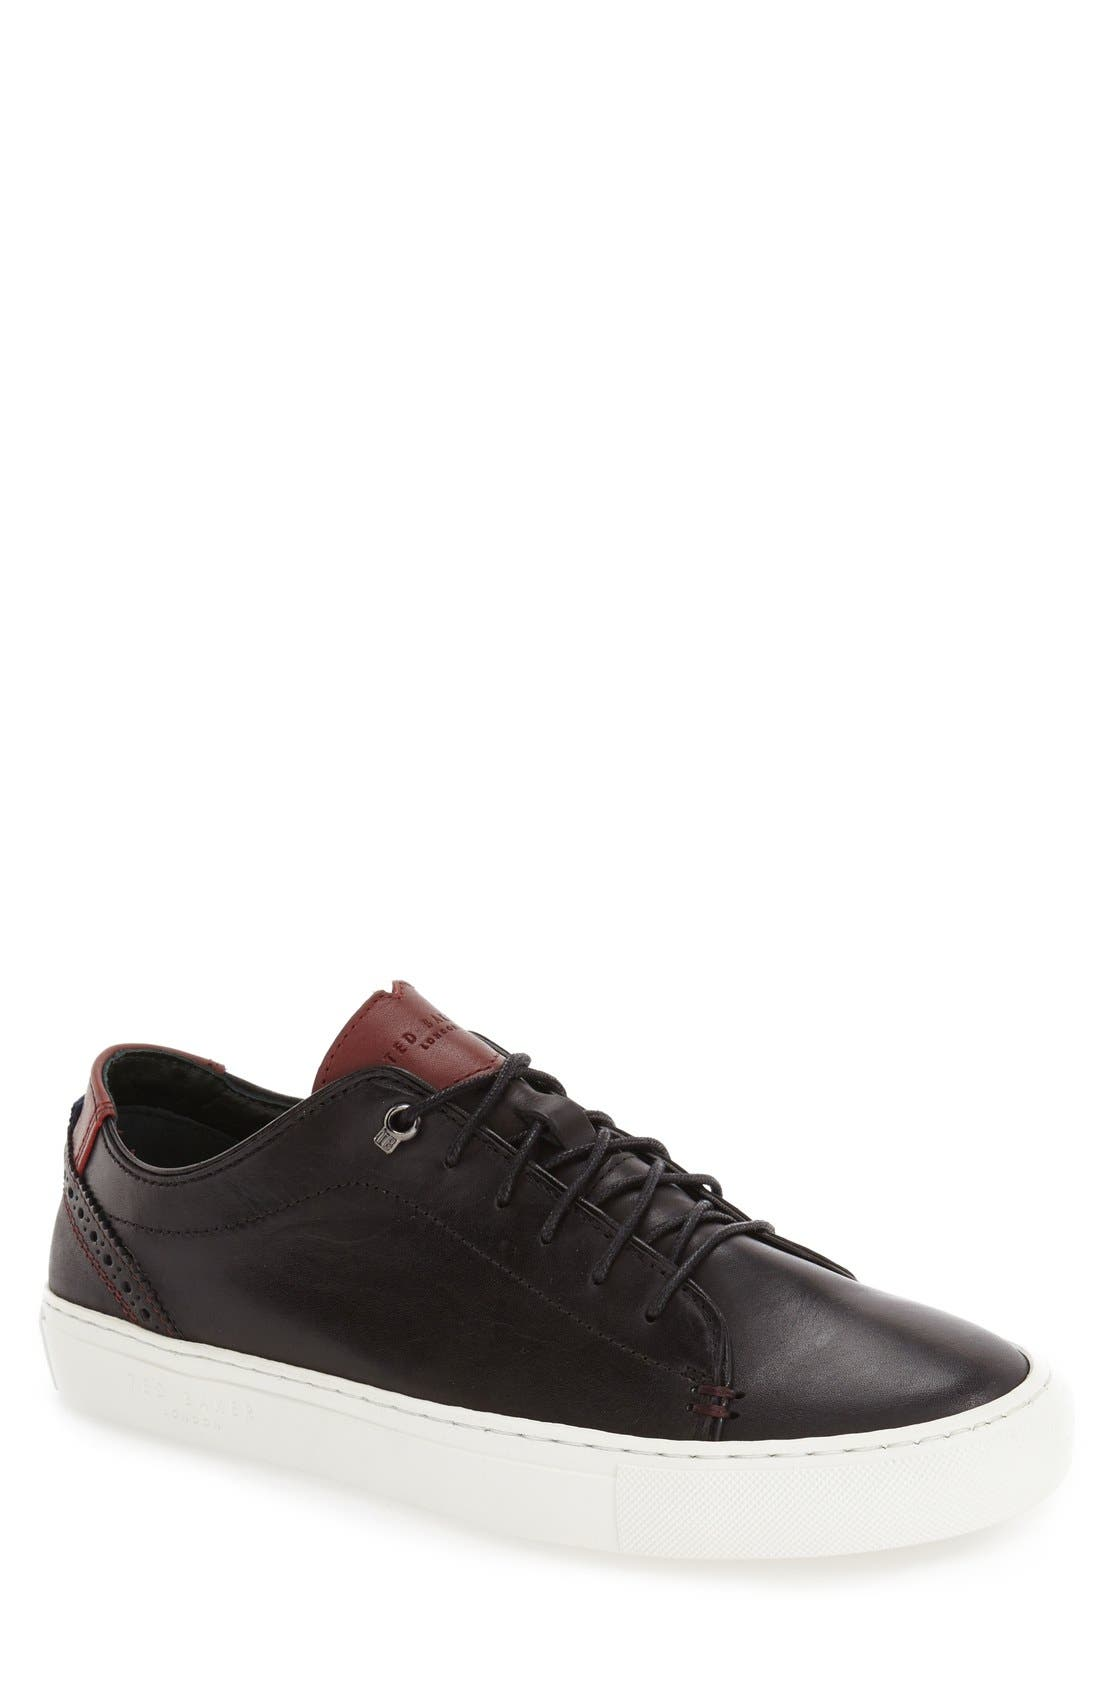 TED BAKER LONDON, 'Kiing Classic' Sneaker, Alternate thumbnail 4, color, 001